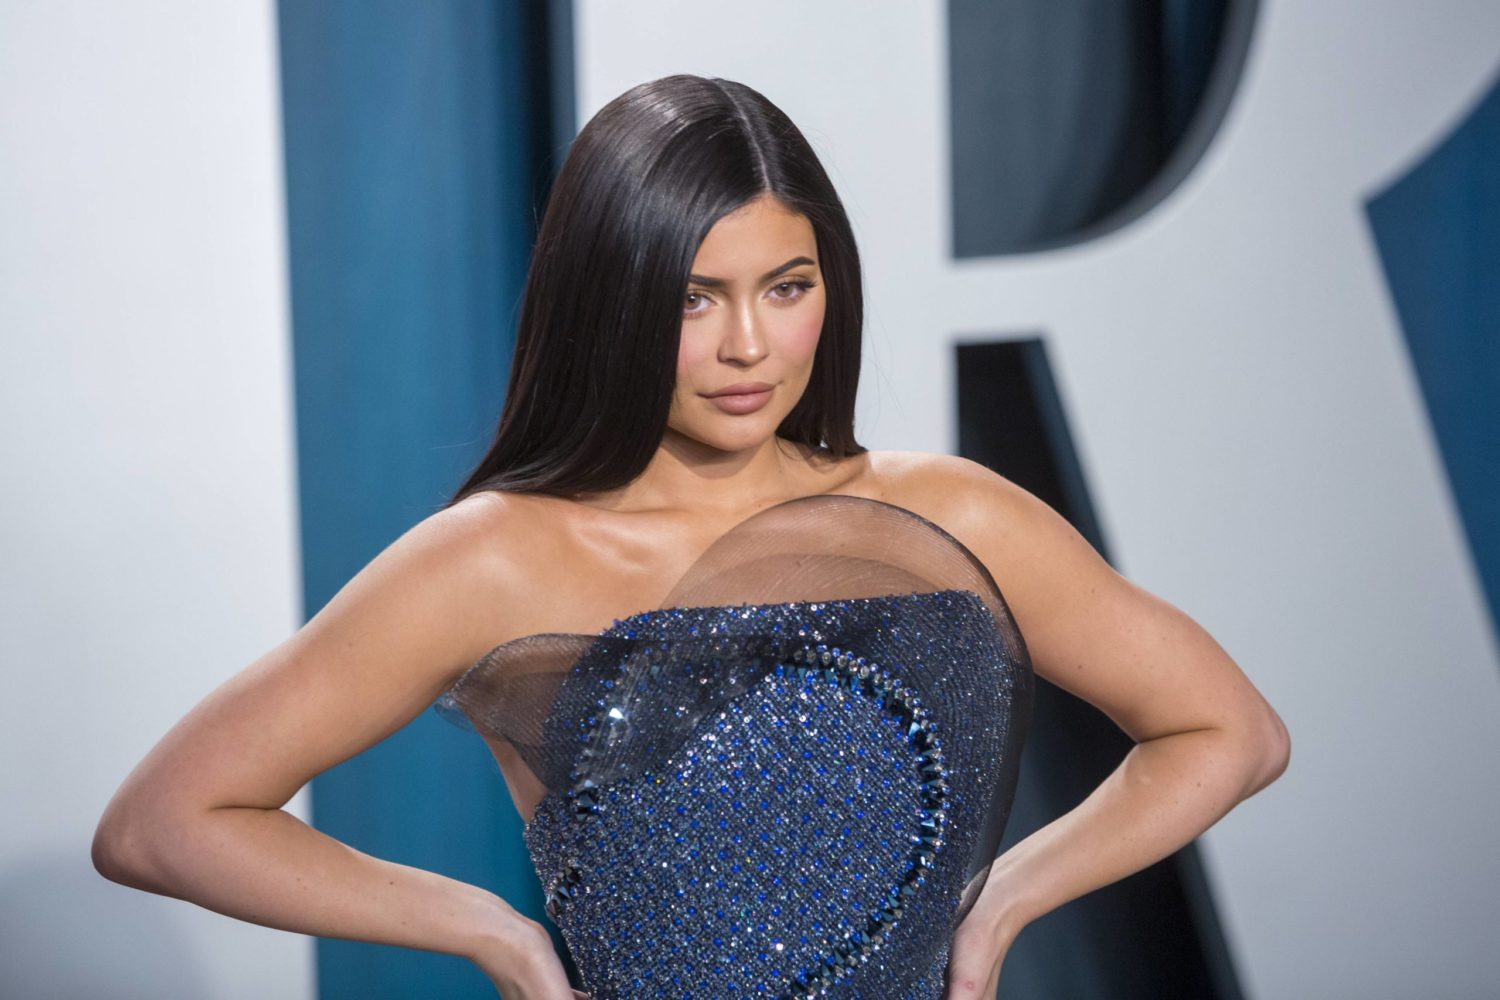 """Kylie Jenner shares bikini pic and declares it is """"time to start cutting off these quarantine pounds"""""""